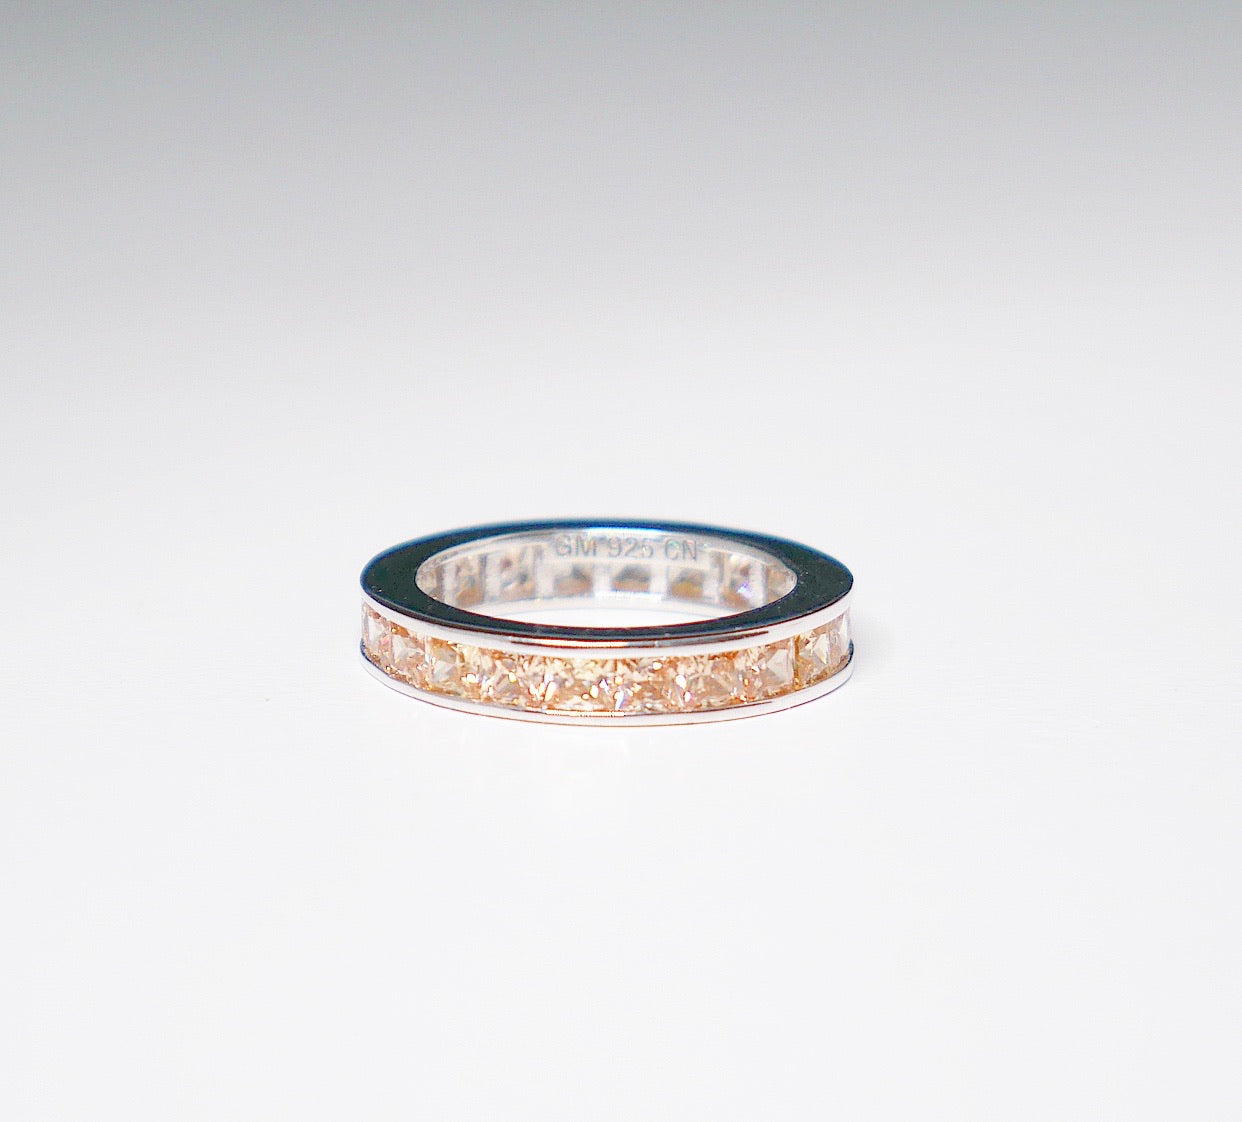 Miami Tan Baguette Ring